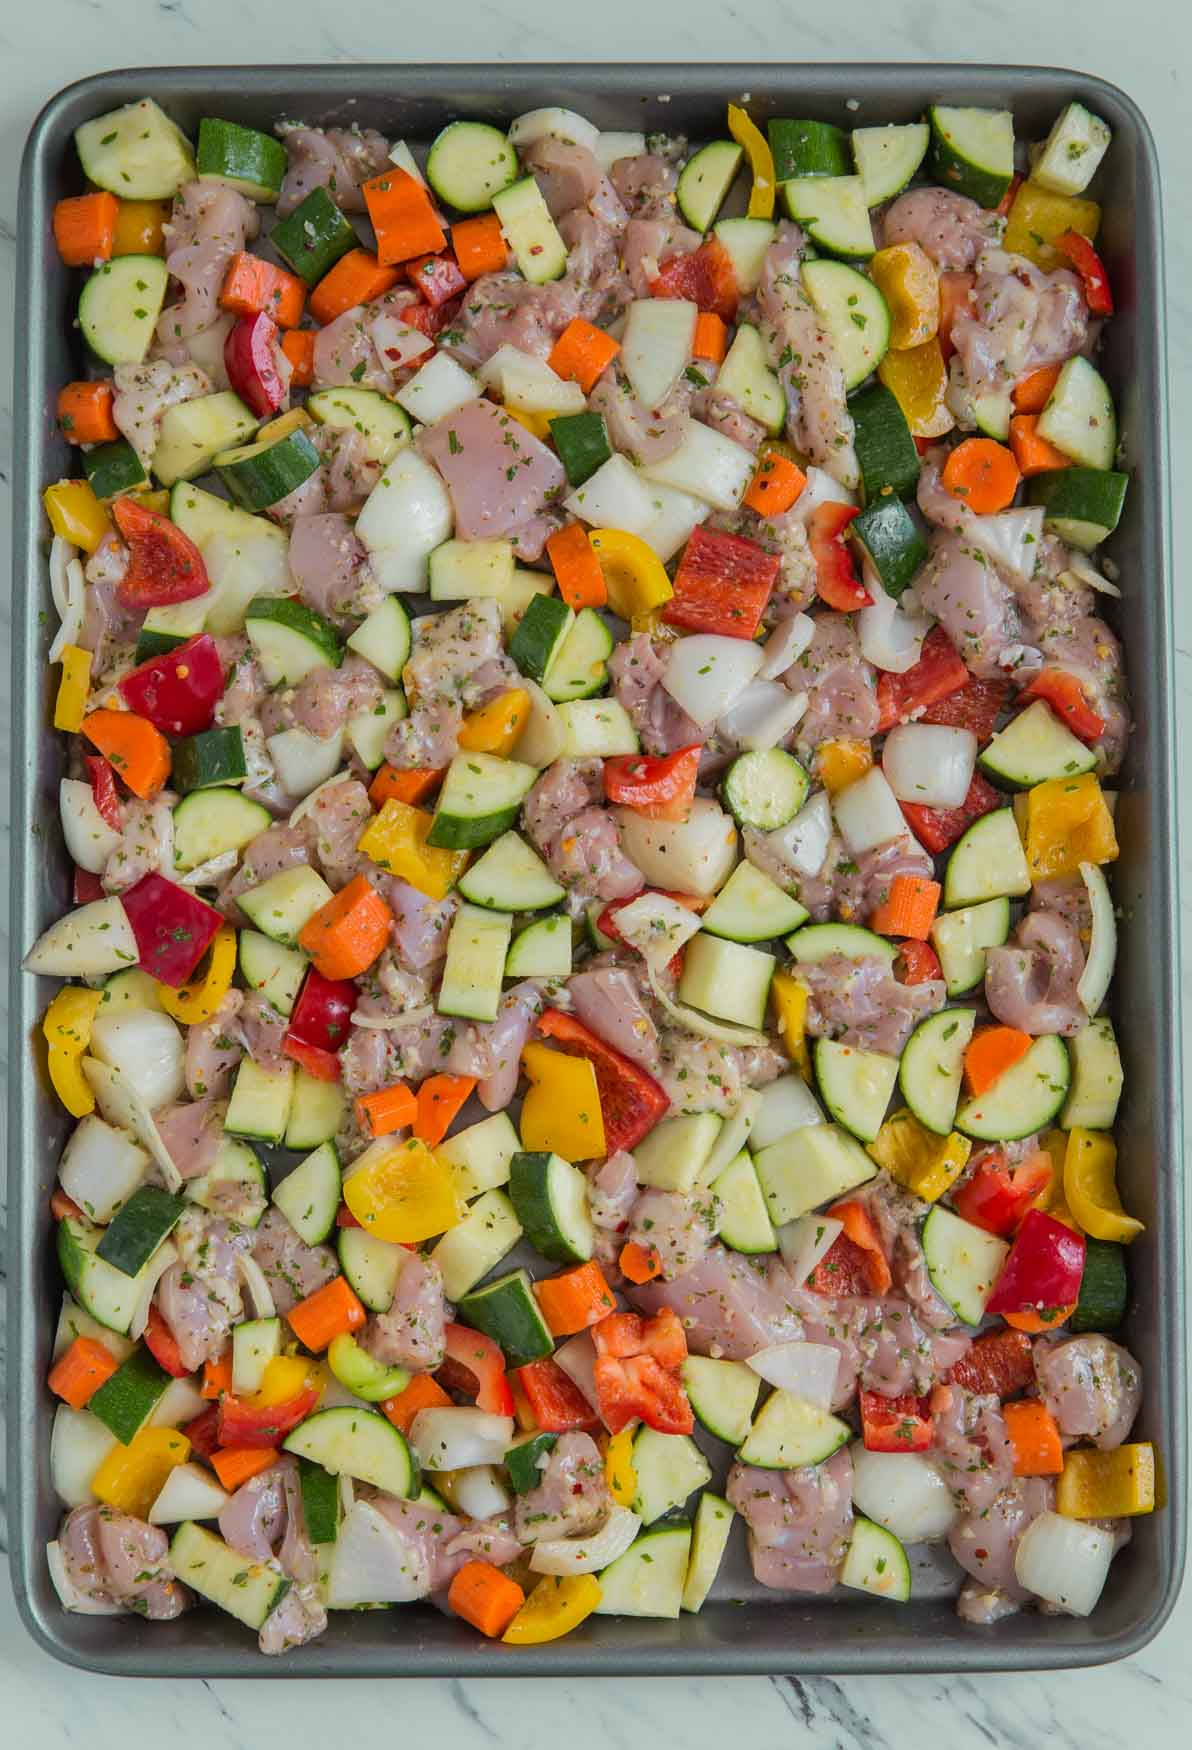 Marinated chicken and vegetables in a baking tray ready to go in the oven